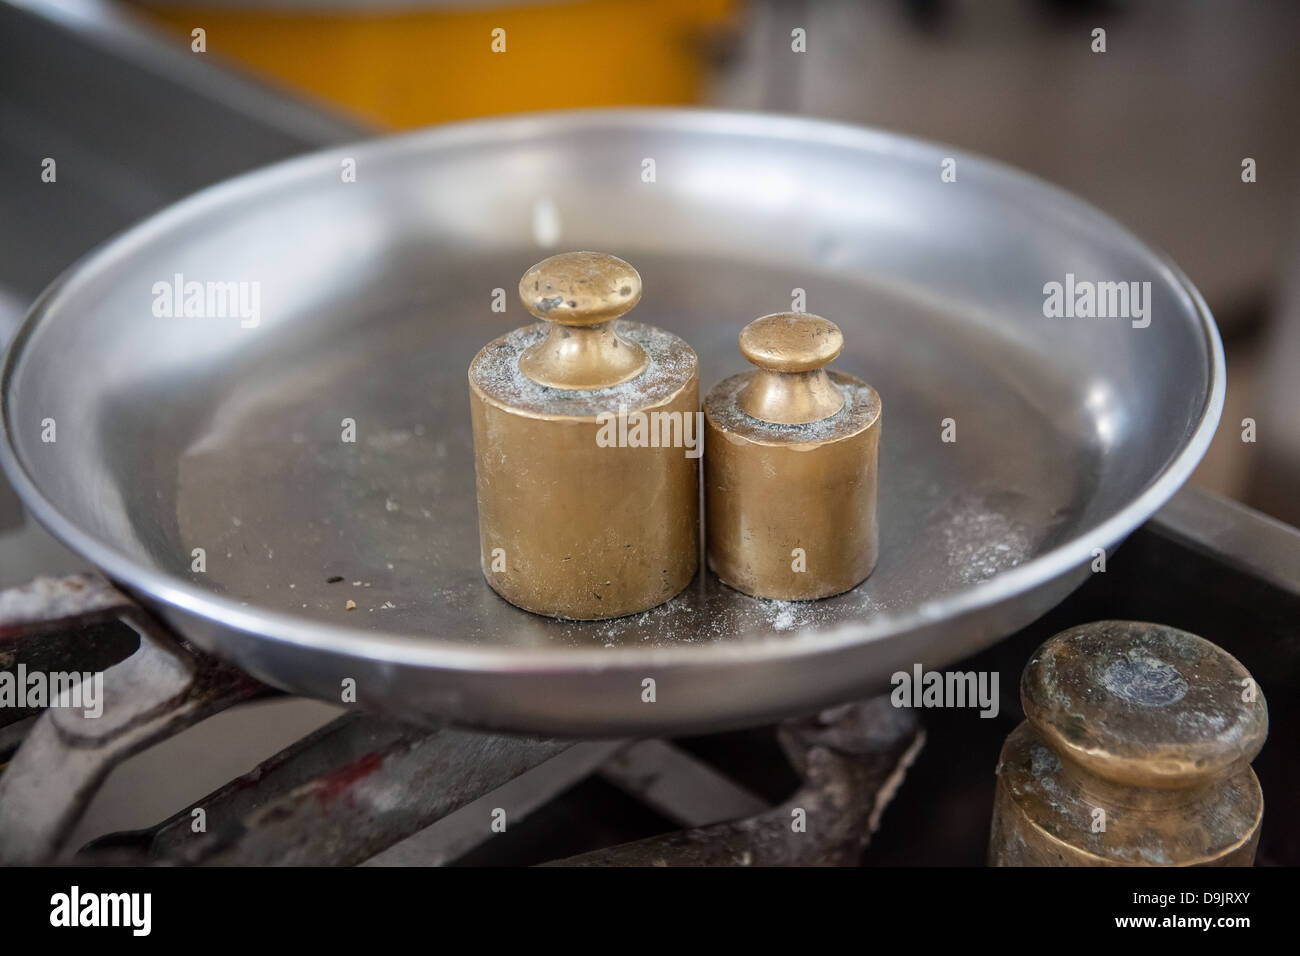 A set of antique weights on a scale used for measuring ingredients at the Caroppo Bakery, Specchia Gallone. - Stock Image